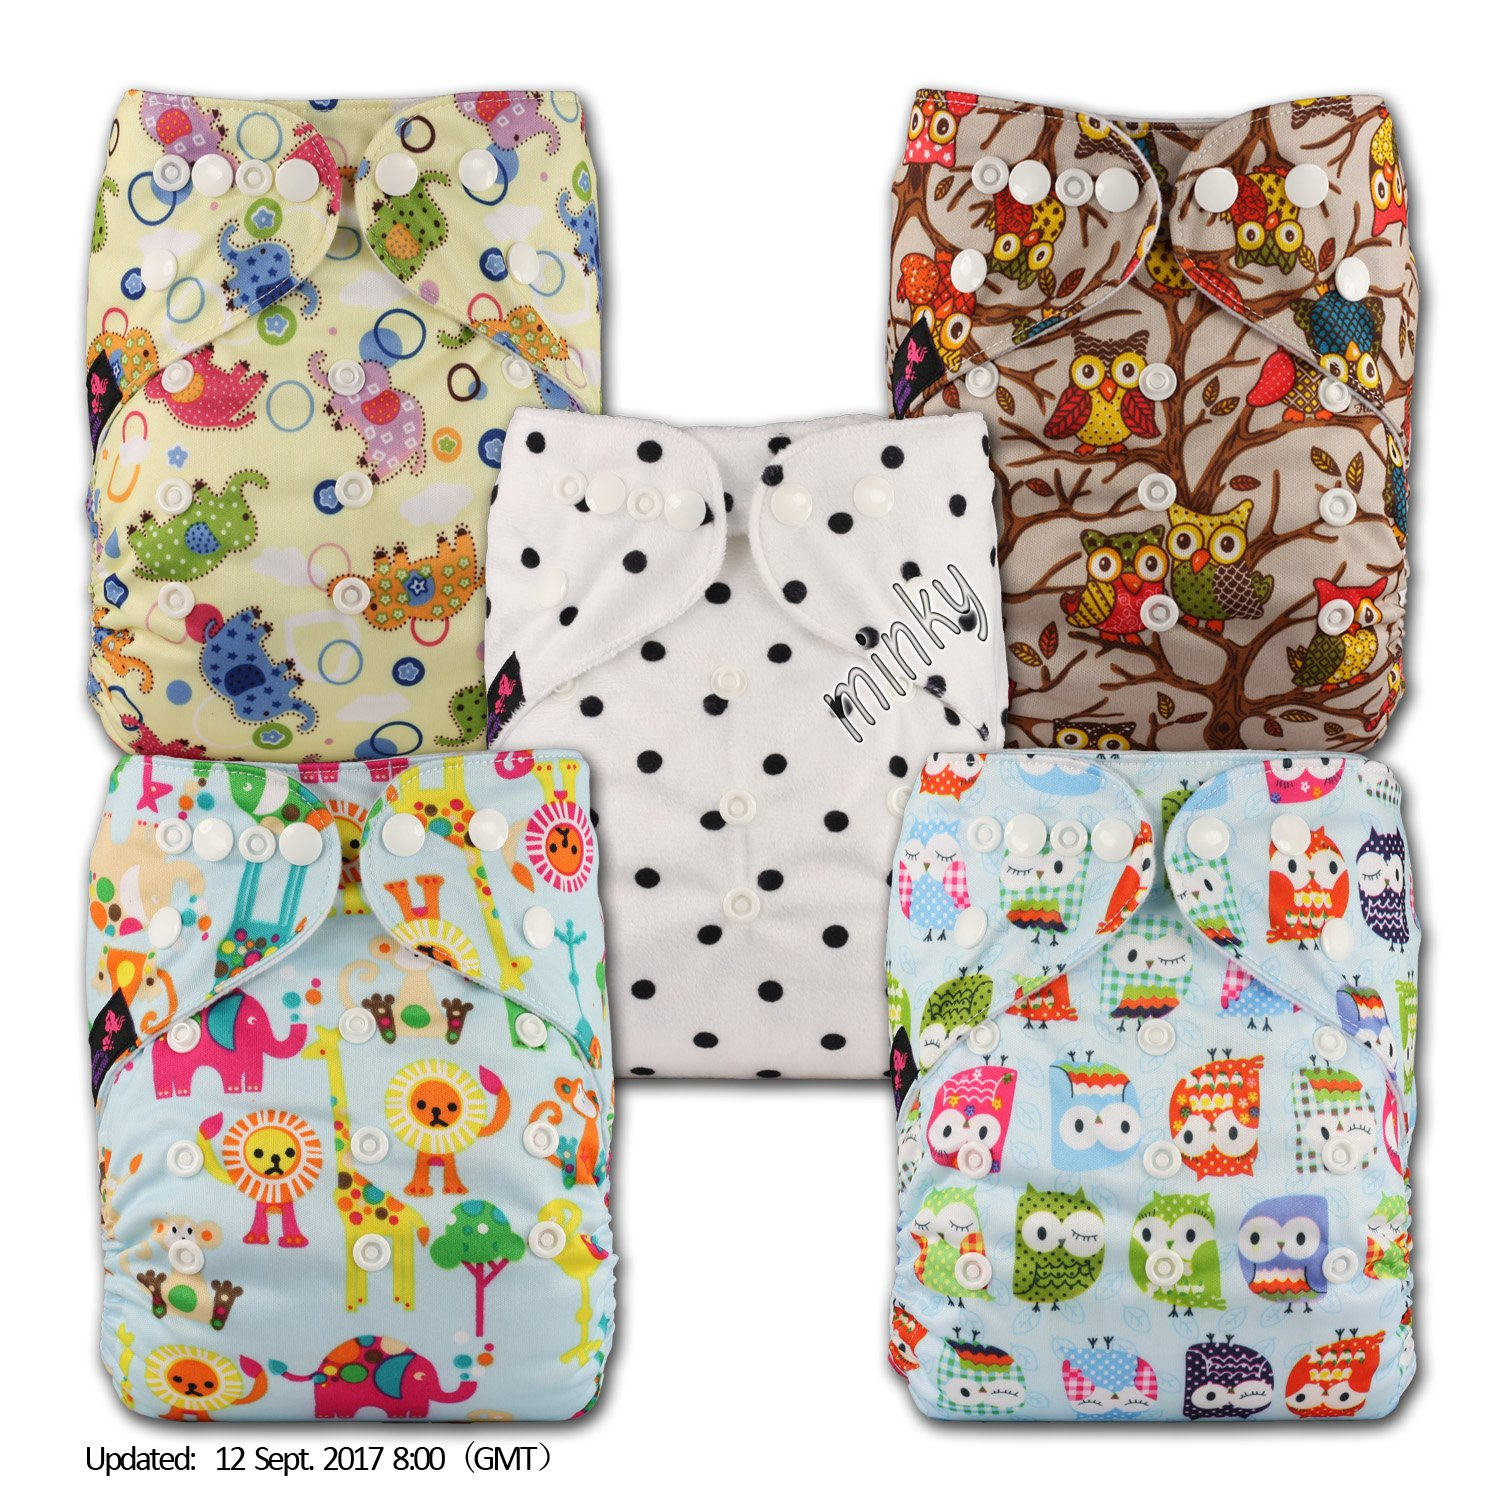 Fastener: Popper Reusable Pocket Cloth Nappy Littles /& Bloomz Set of 5 with 5 Microfibre Inserts Patterns 505